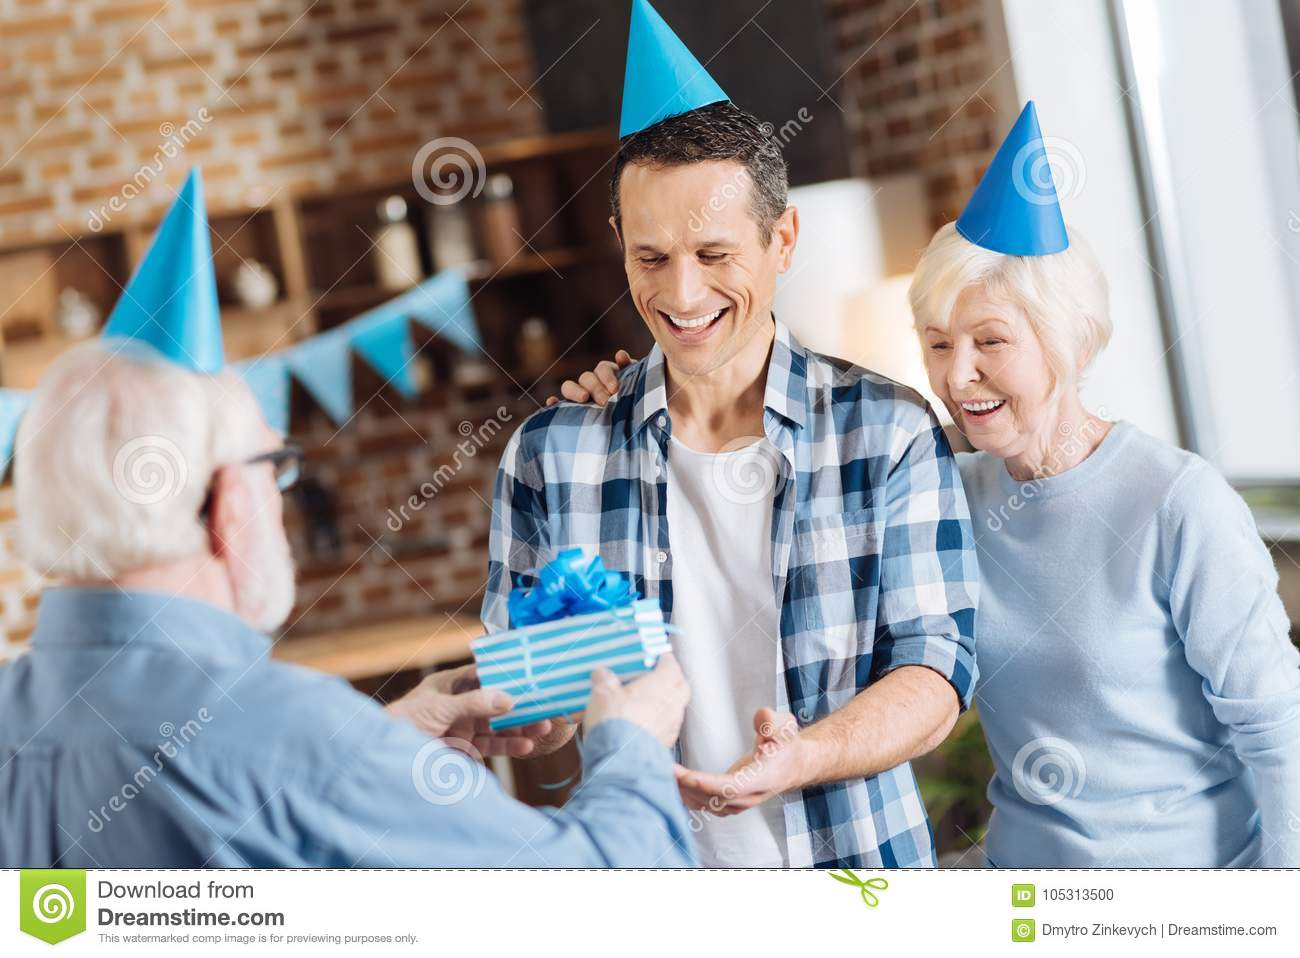 Pleasant Elderly Men Giving A Birthday Present To His Adult Son While The Mother Hugging Him And All Of Them Are Wearing Party Hats